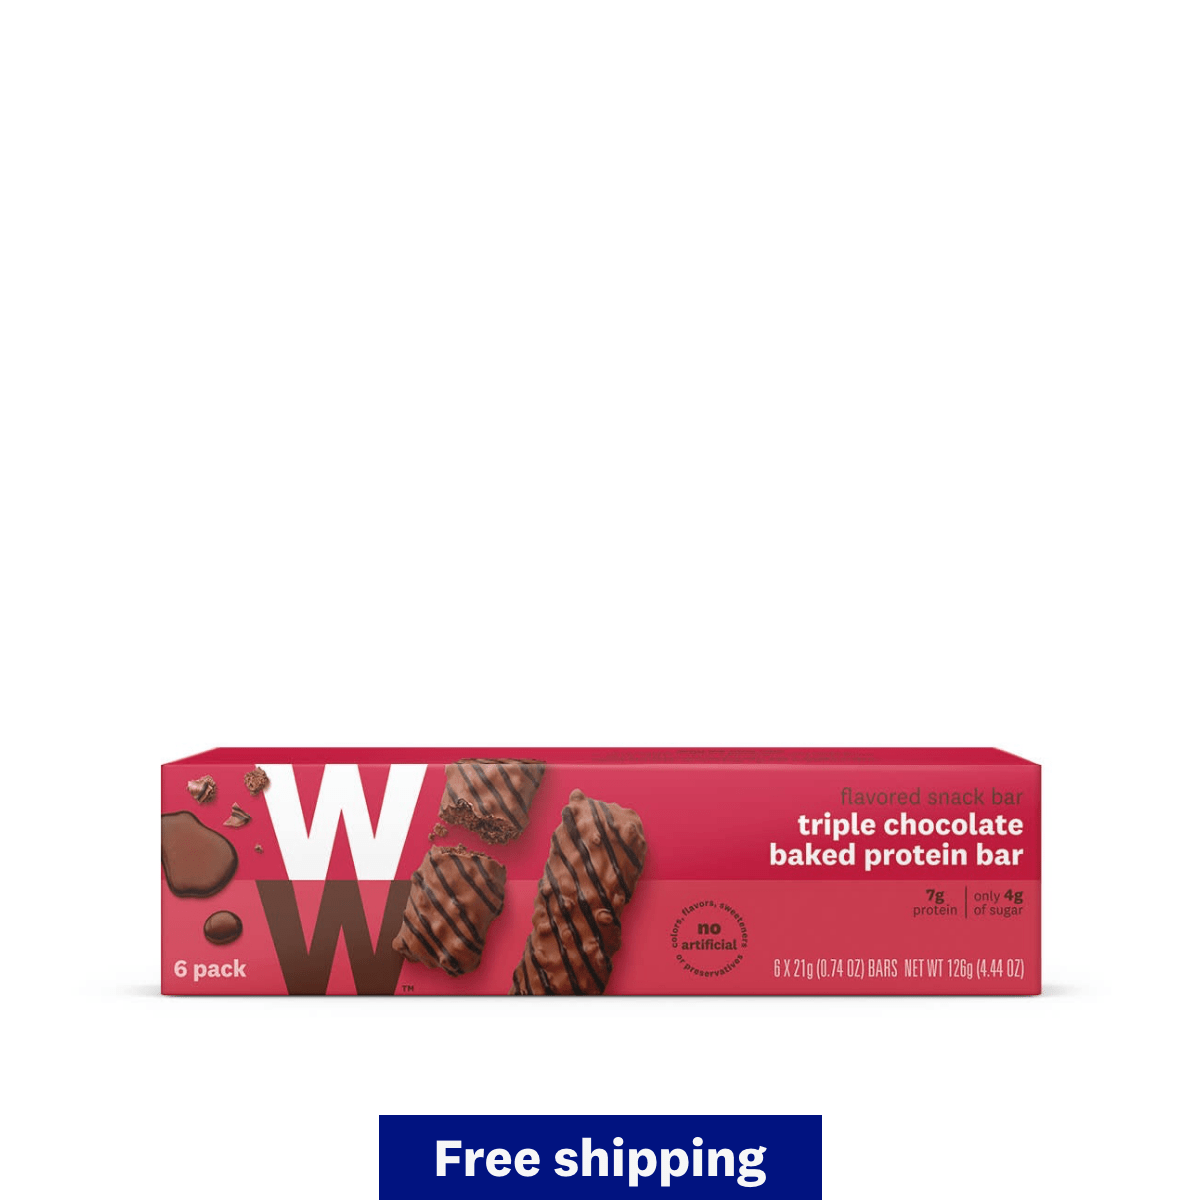 Triple Chocolate Baked Protein Bar Value Pack - qualifies for free shipping